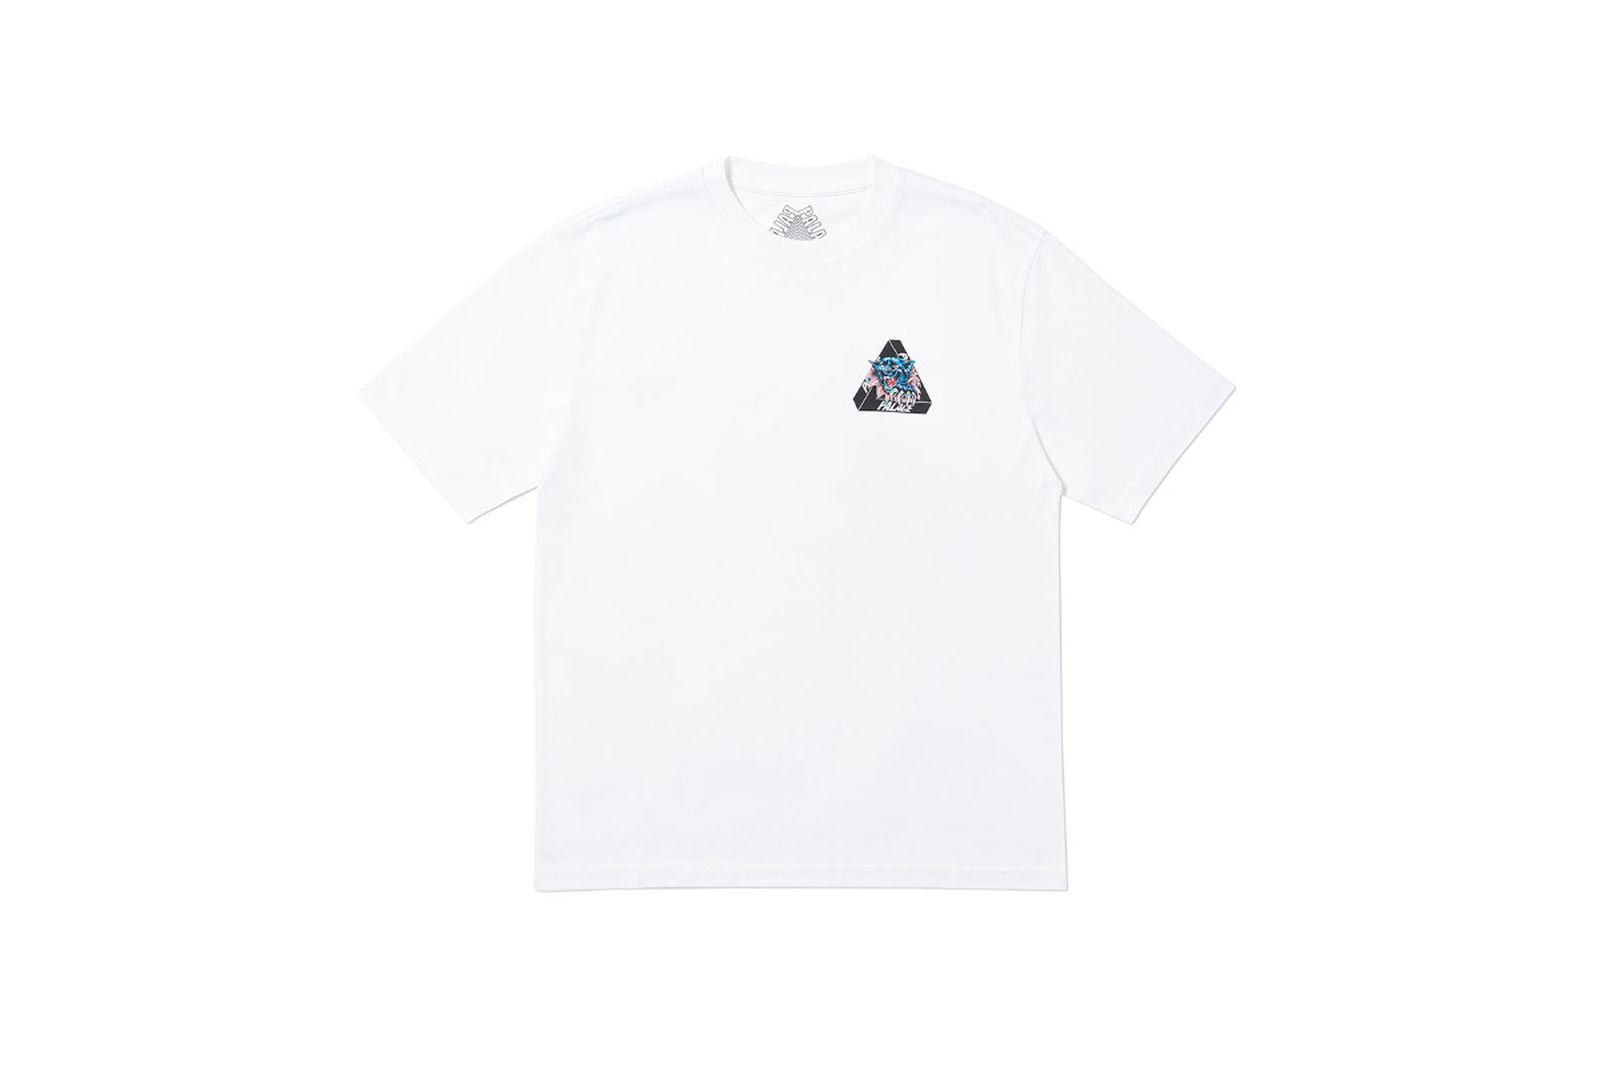 Palace 2019 Autumn T Shirt Ripped white front